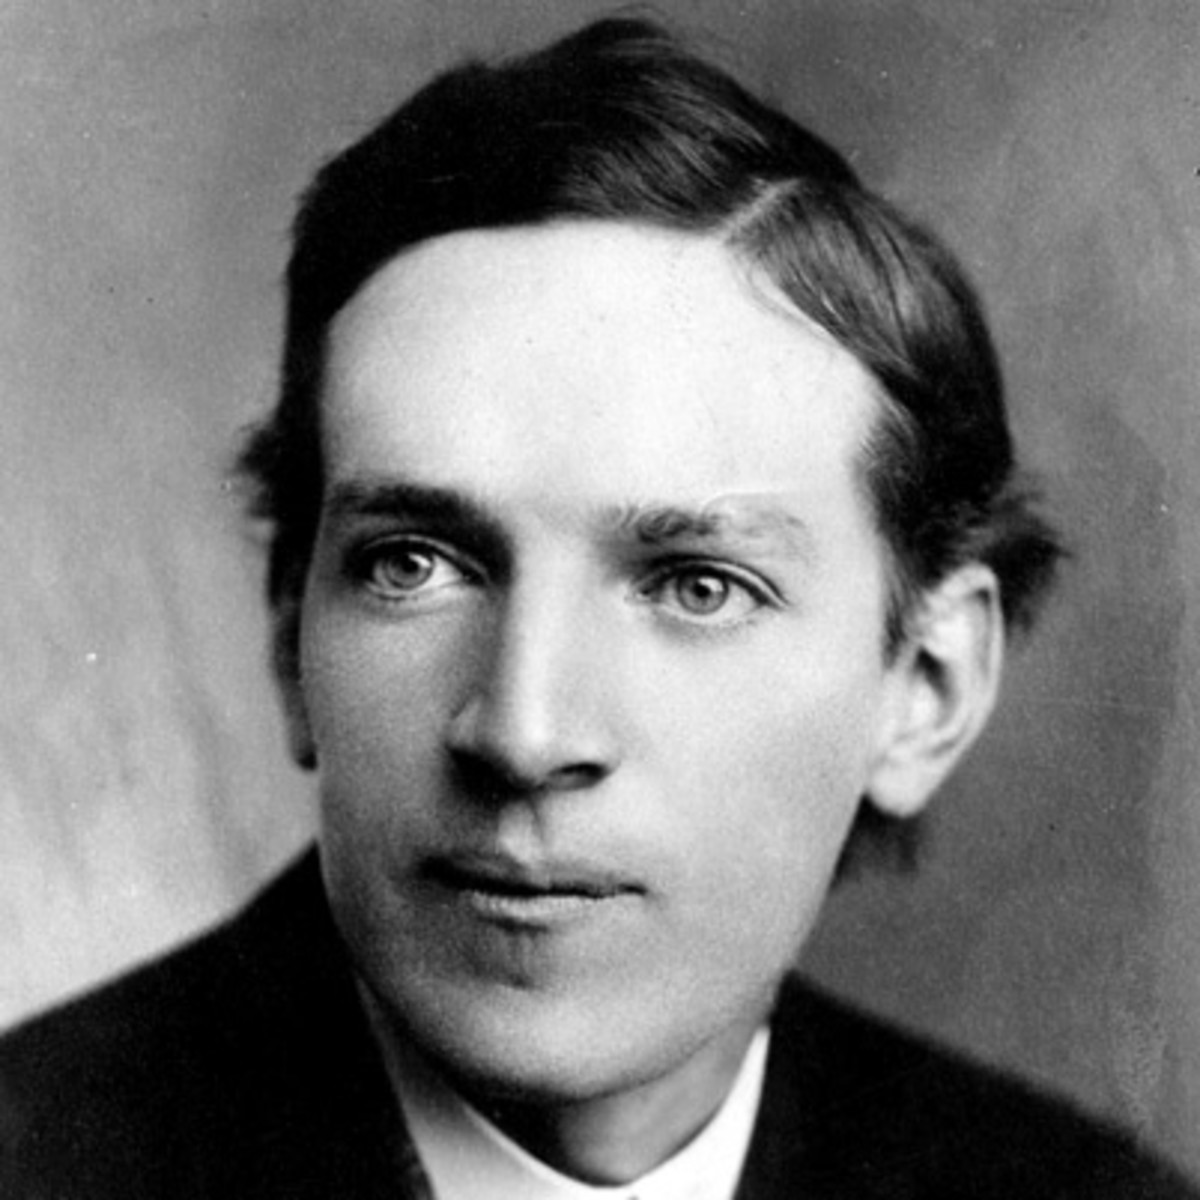 essay the jungle upton sinclair Upton sinclair's the jungle is a highly depressing political novel about capitalism and socialism in america during the early 1900's the novel follows the trials and.